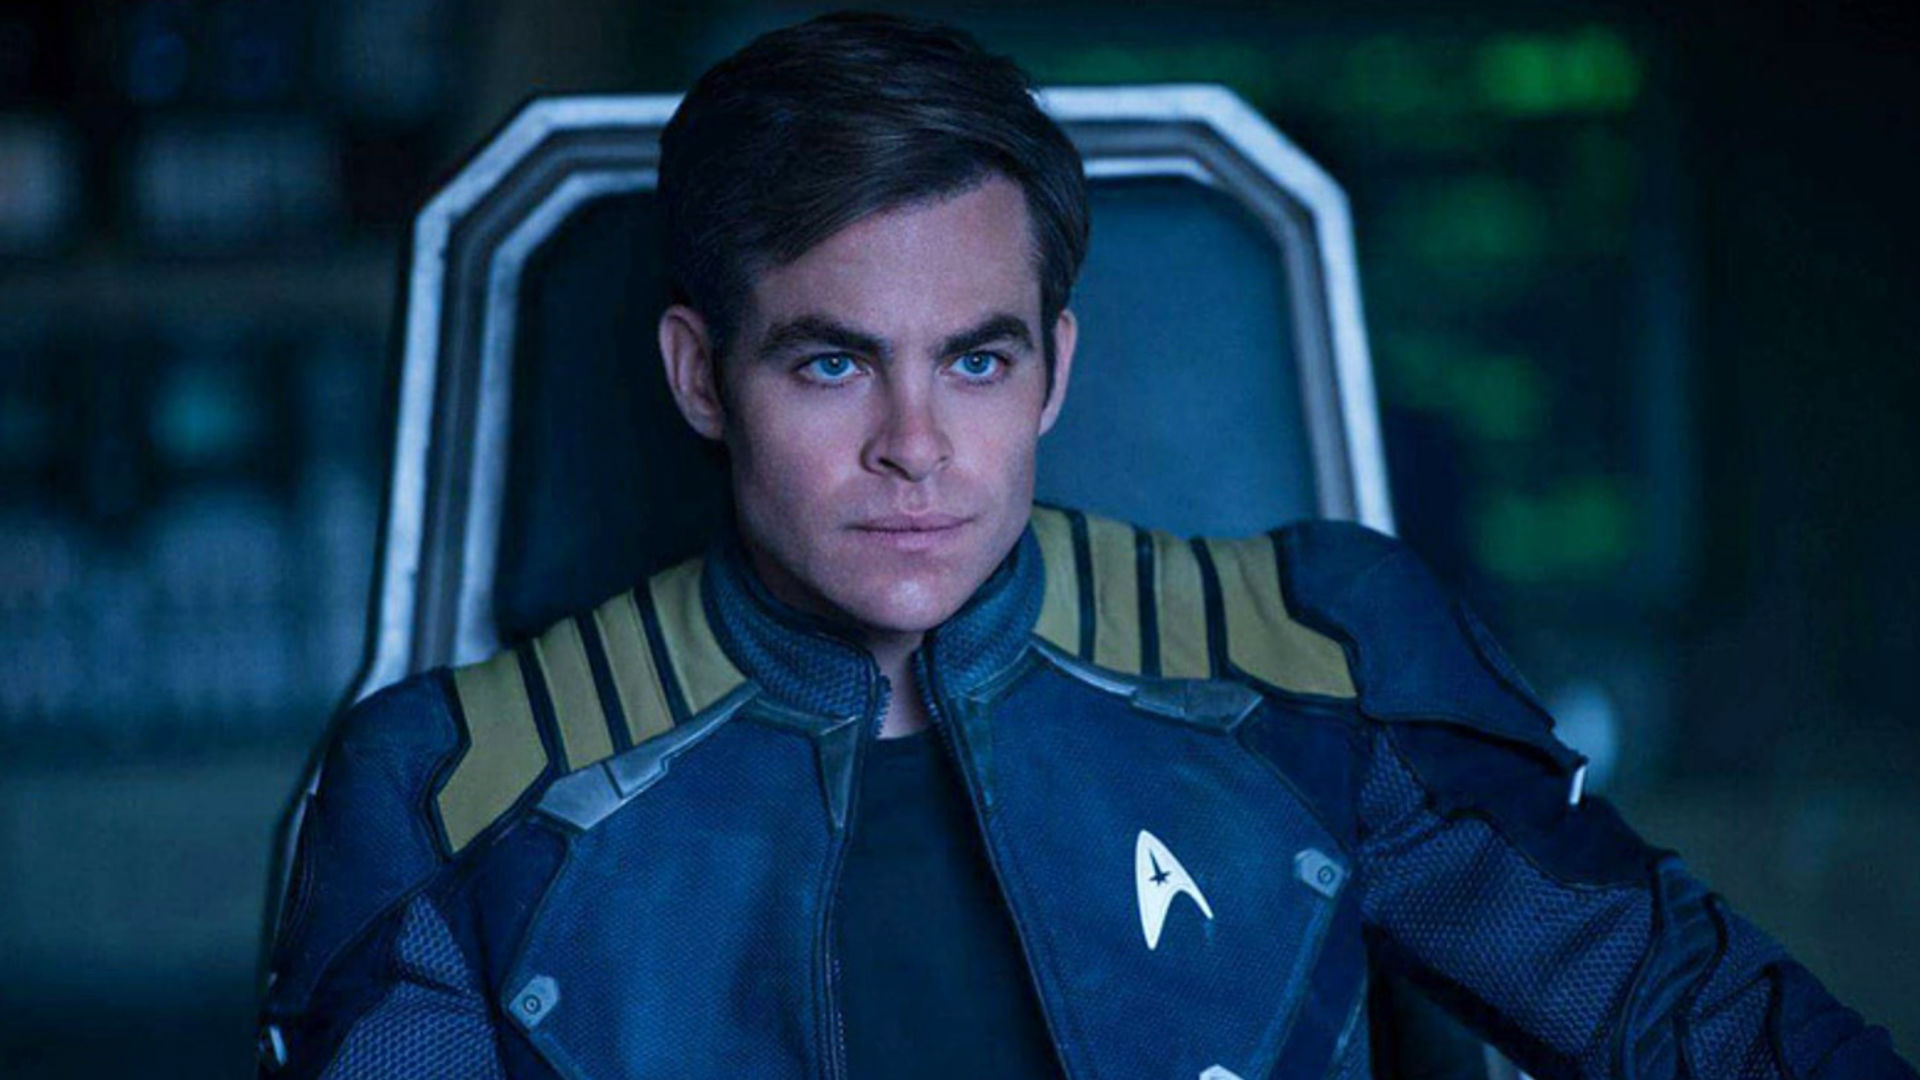 Chris Pine as Captain Kirk in Star Trek Beyond